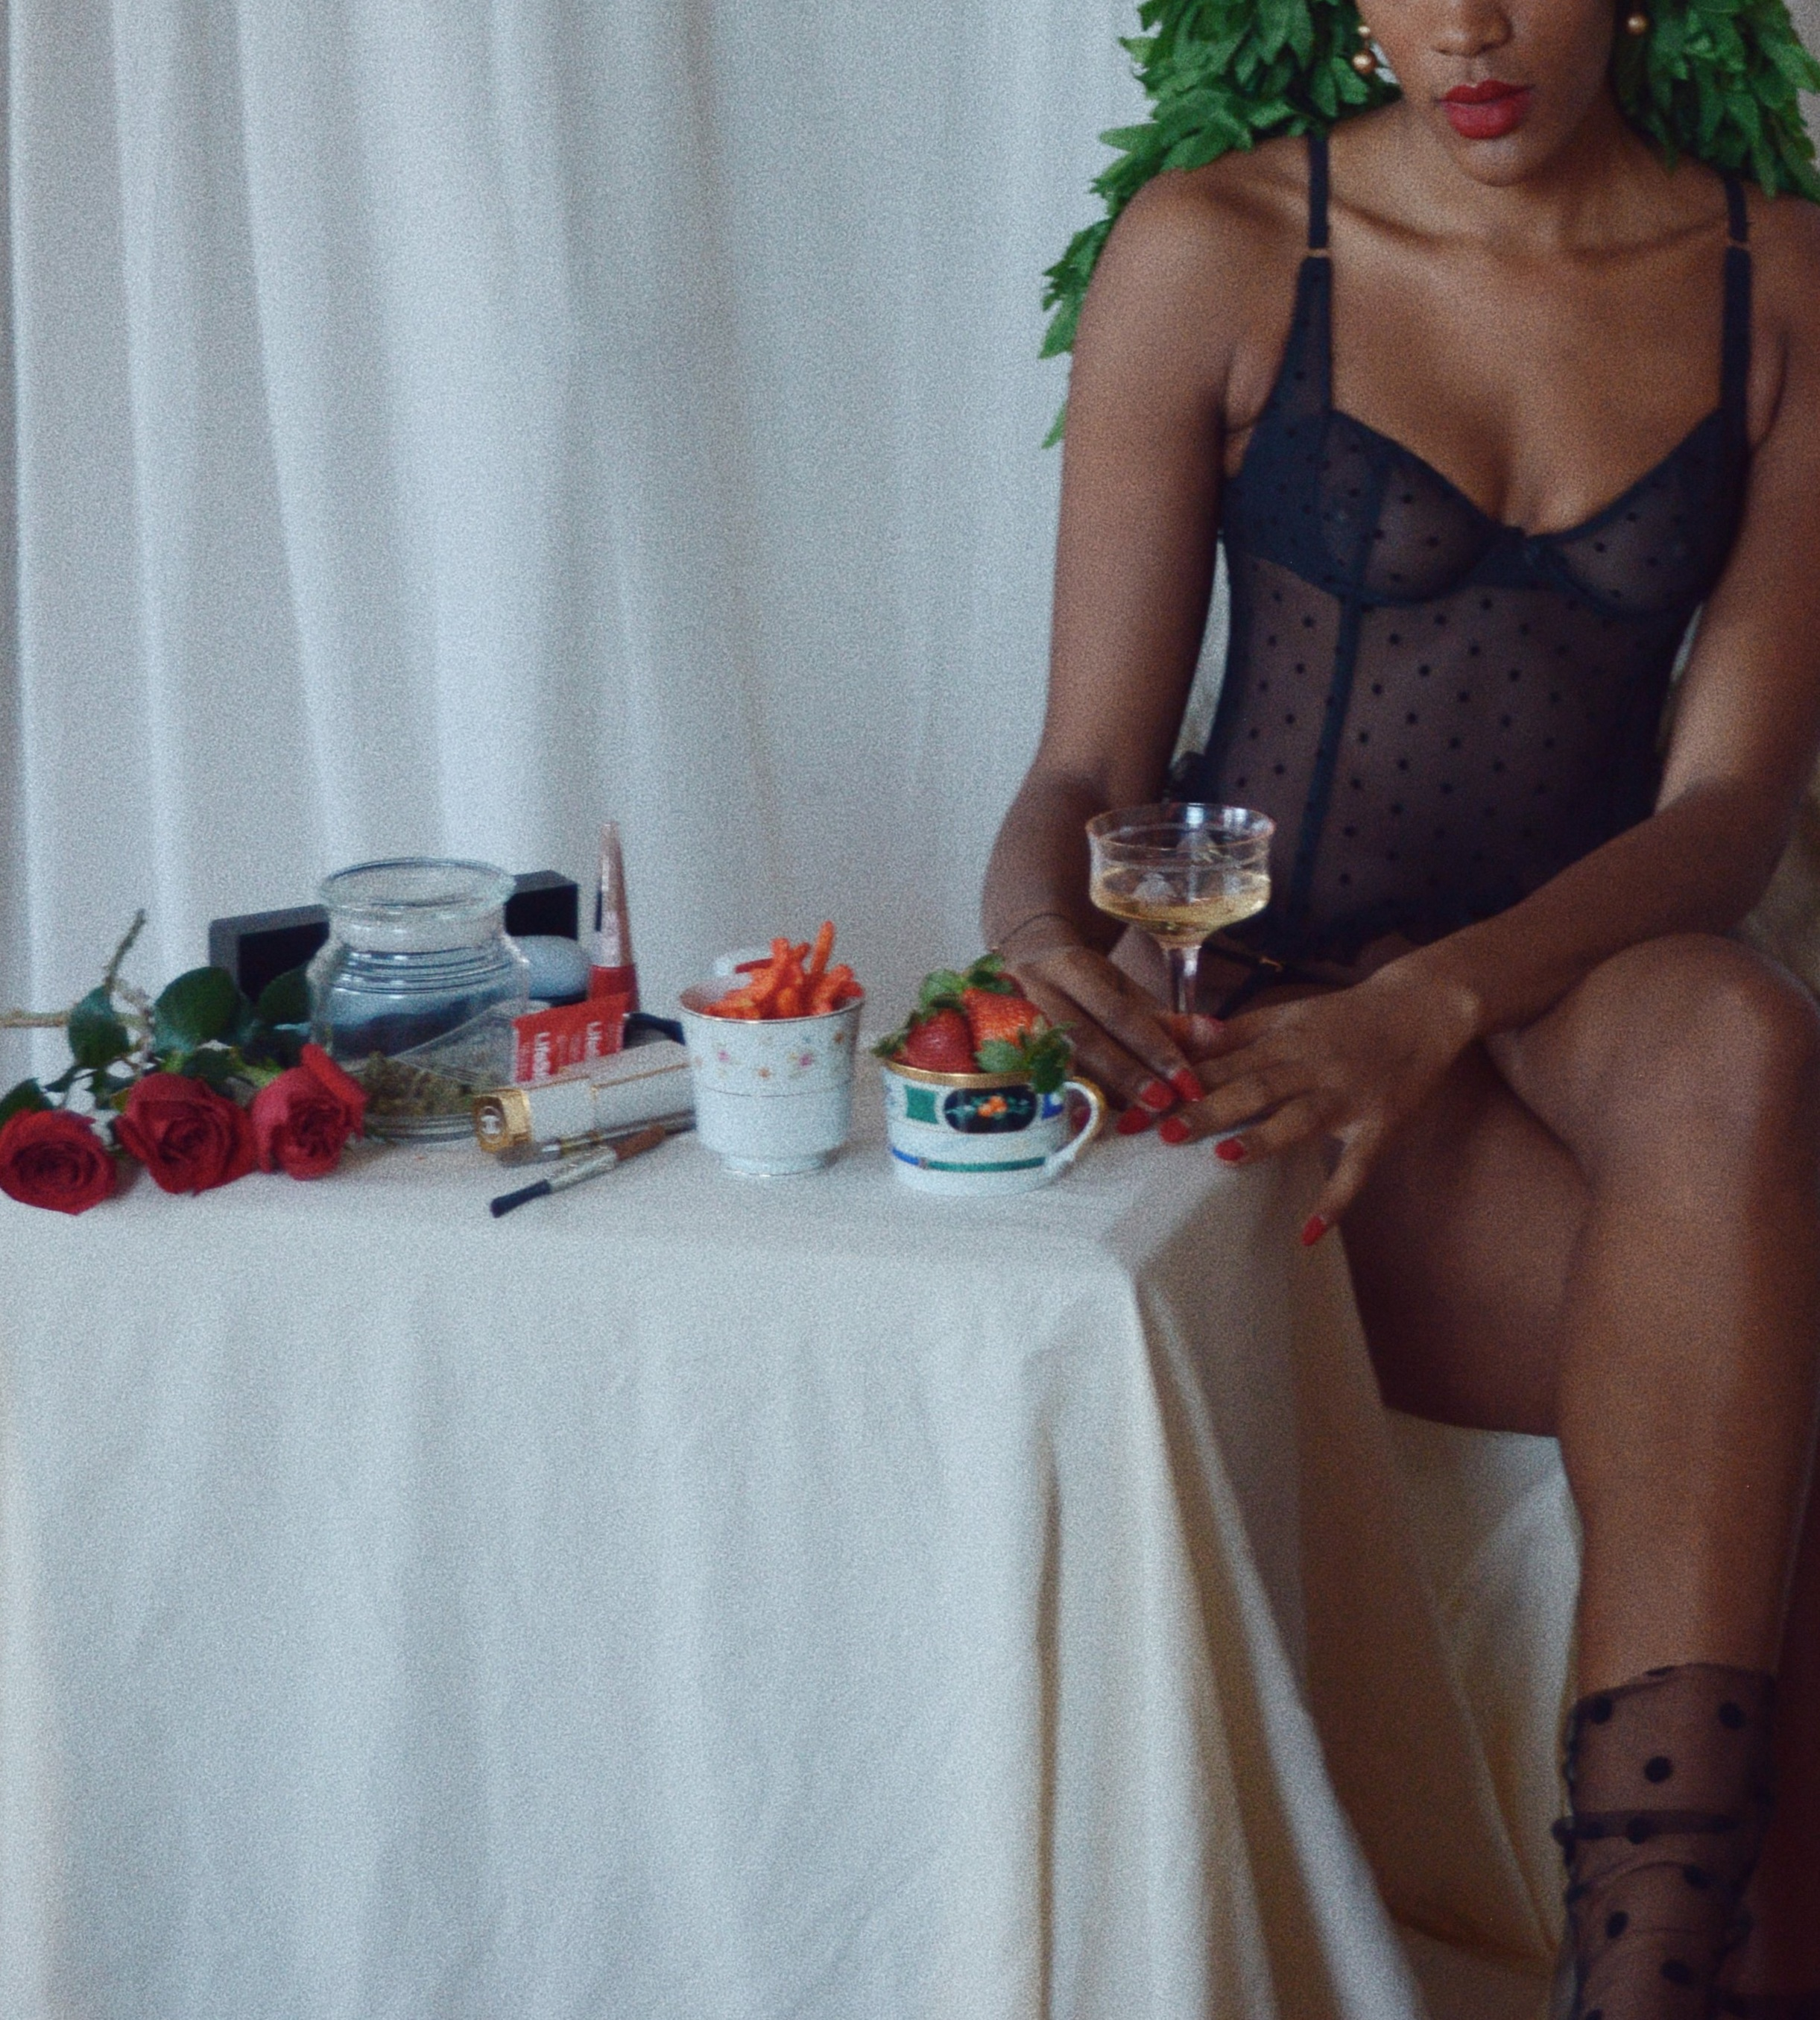 A little Savage Fenty lingerie and wine while getting ready - Subscribe to Juana Zine here